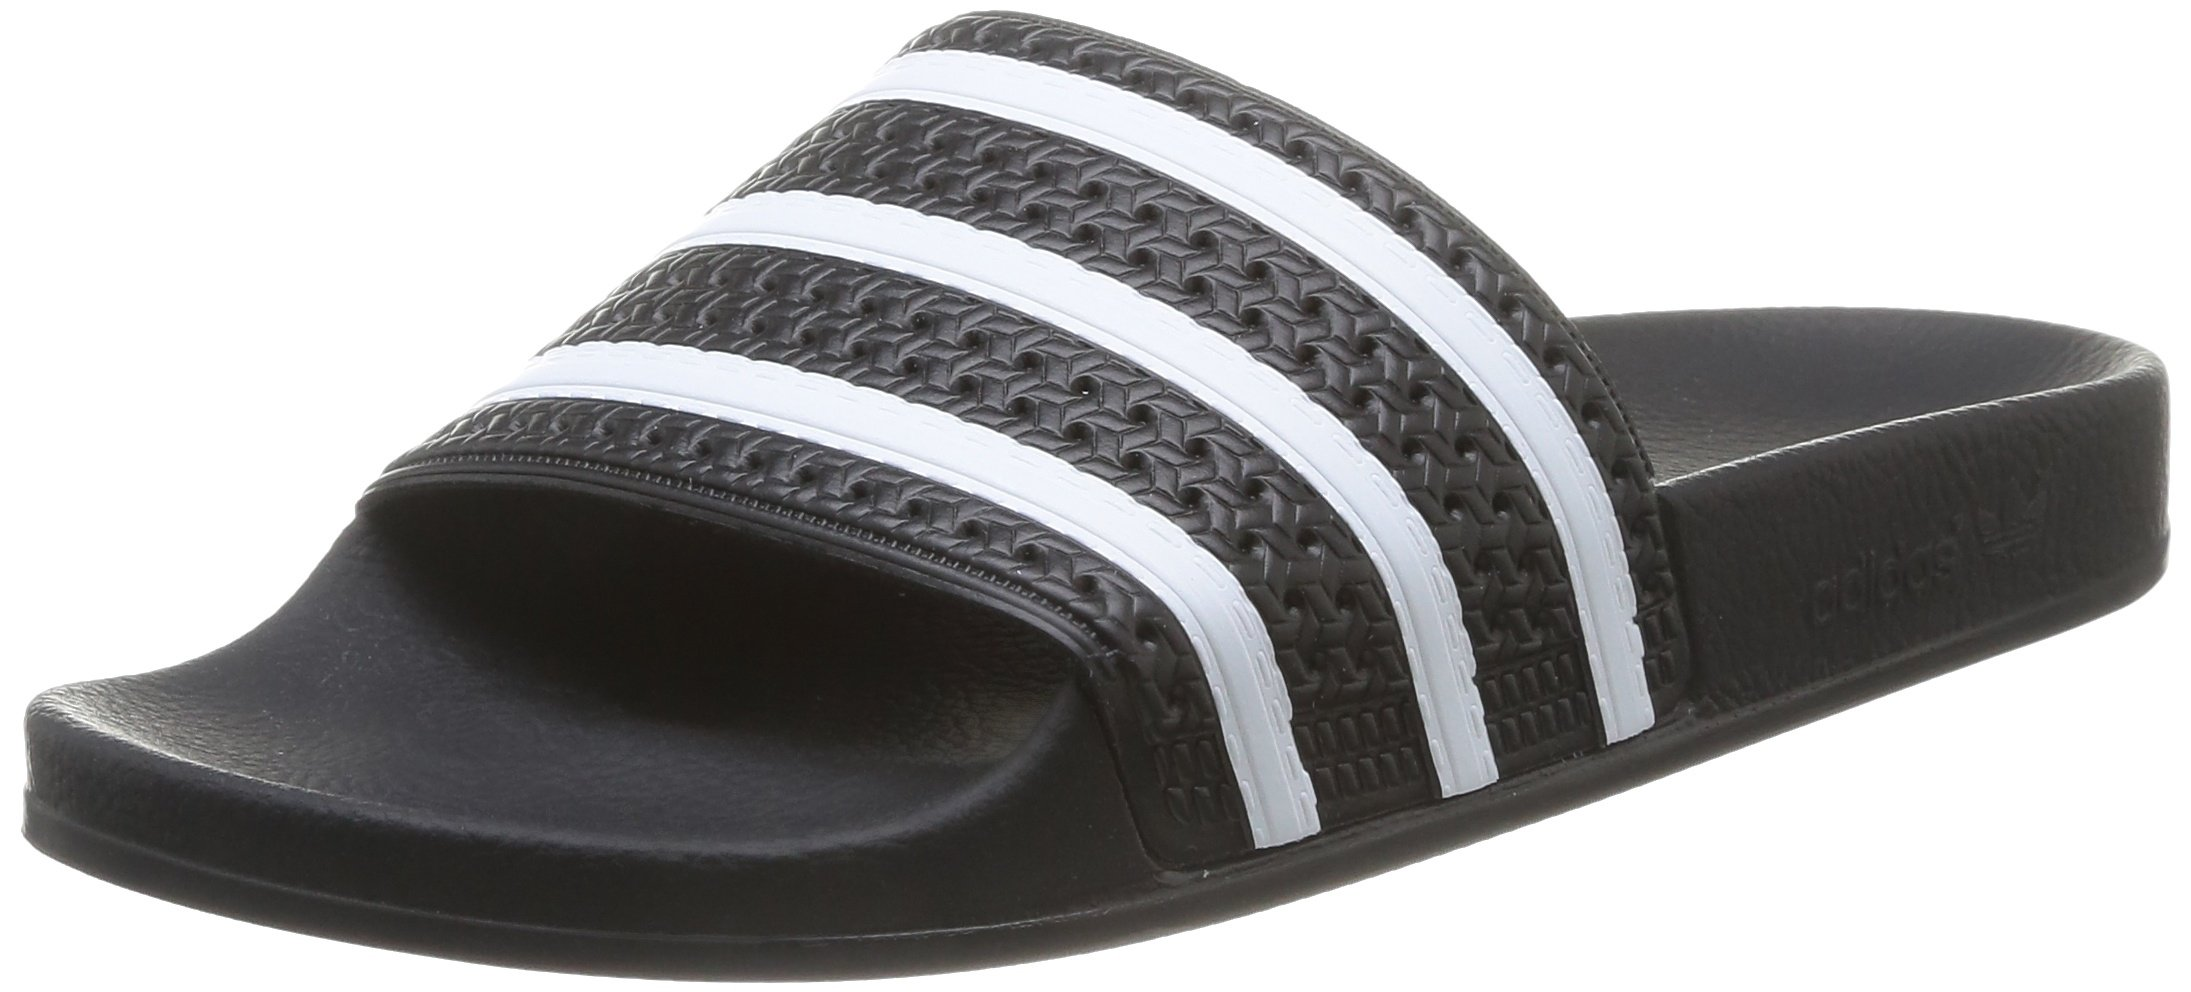 adidas 280647 280647 Mens Sandals - Blk White - 11